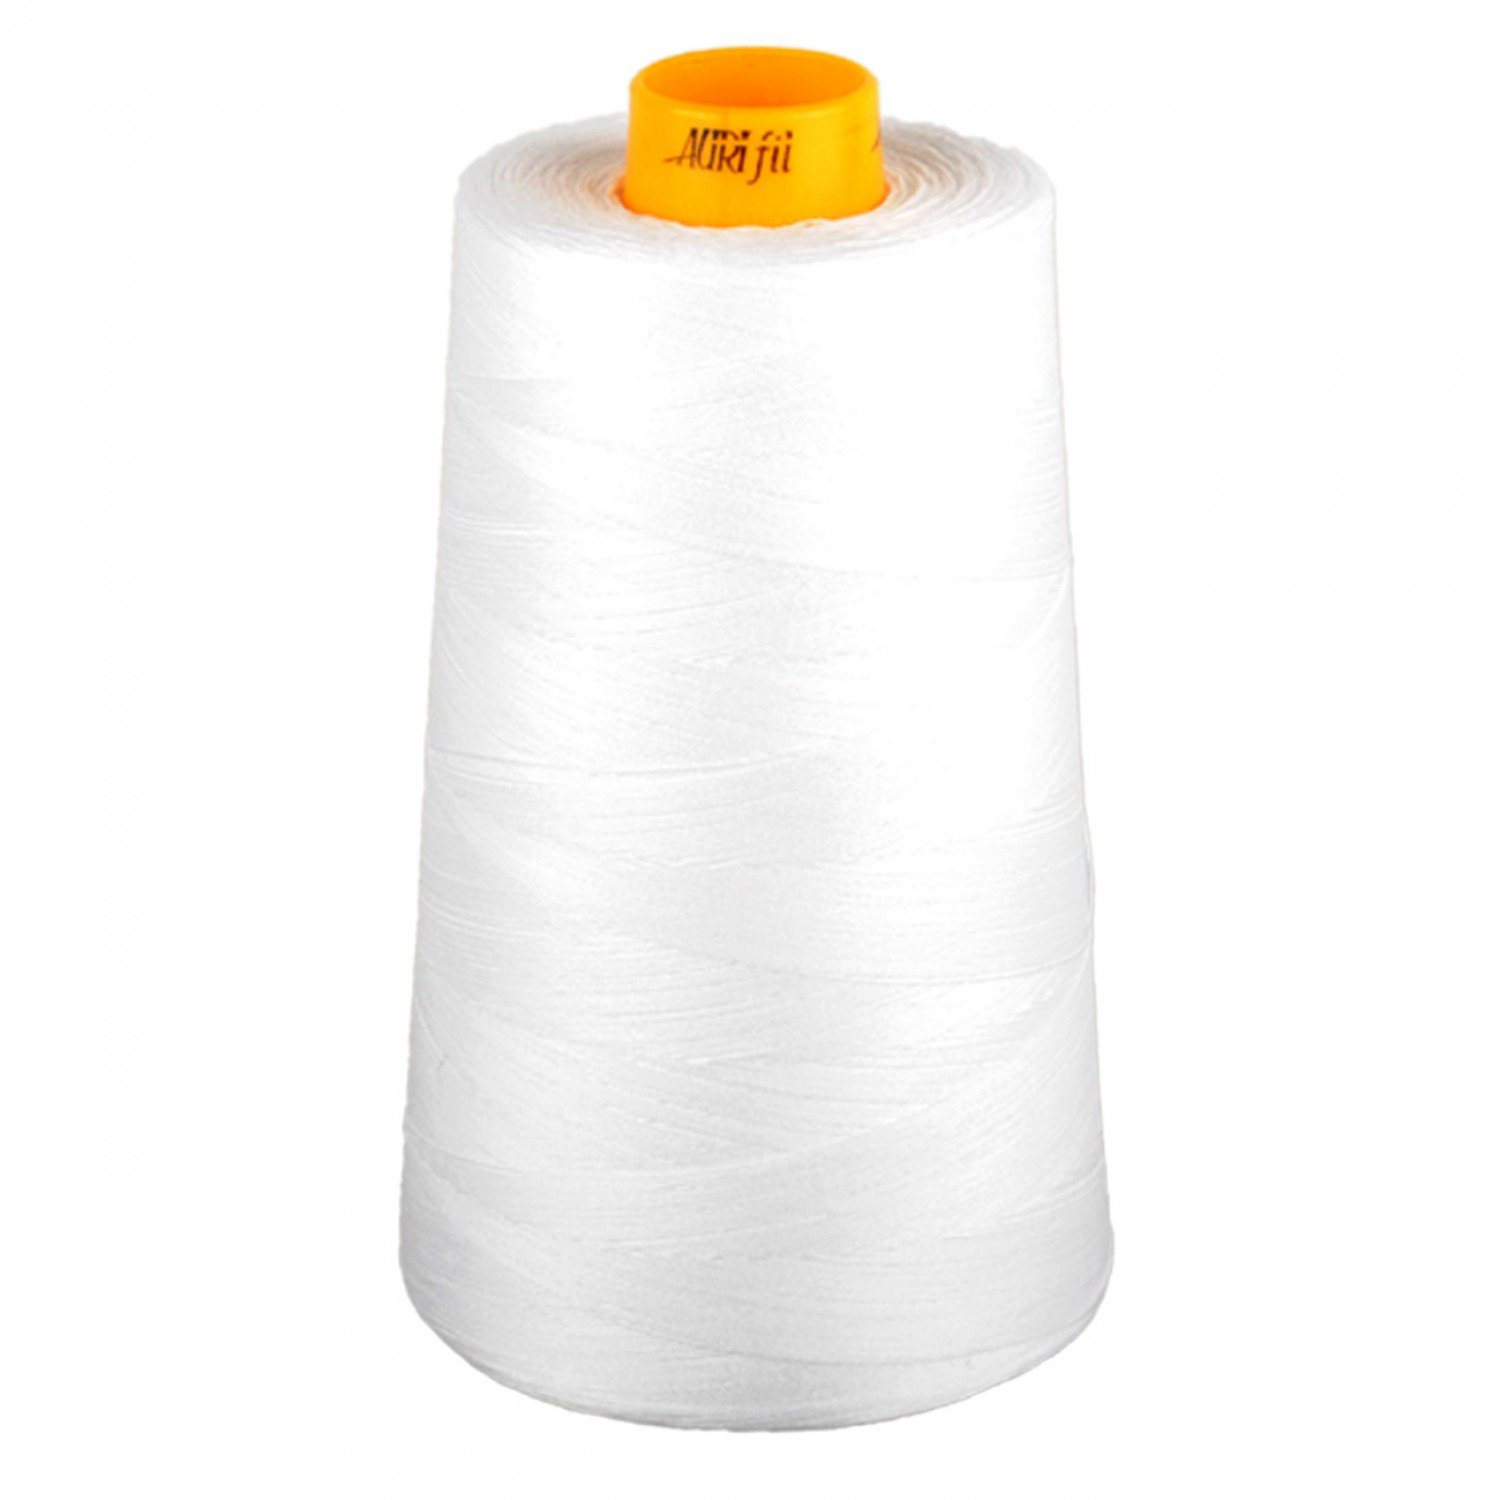 Aurifil Mako Cotton 3-ply Longarm Thread 40wt 3280 yd cone 2024 White